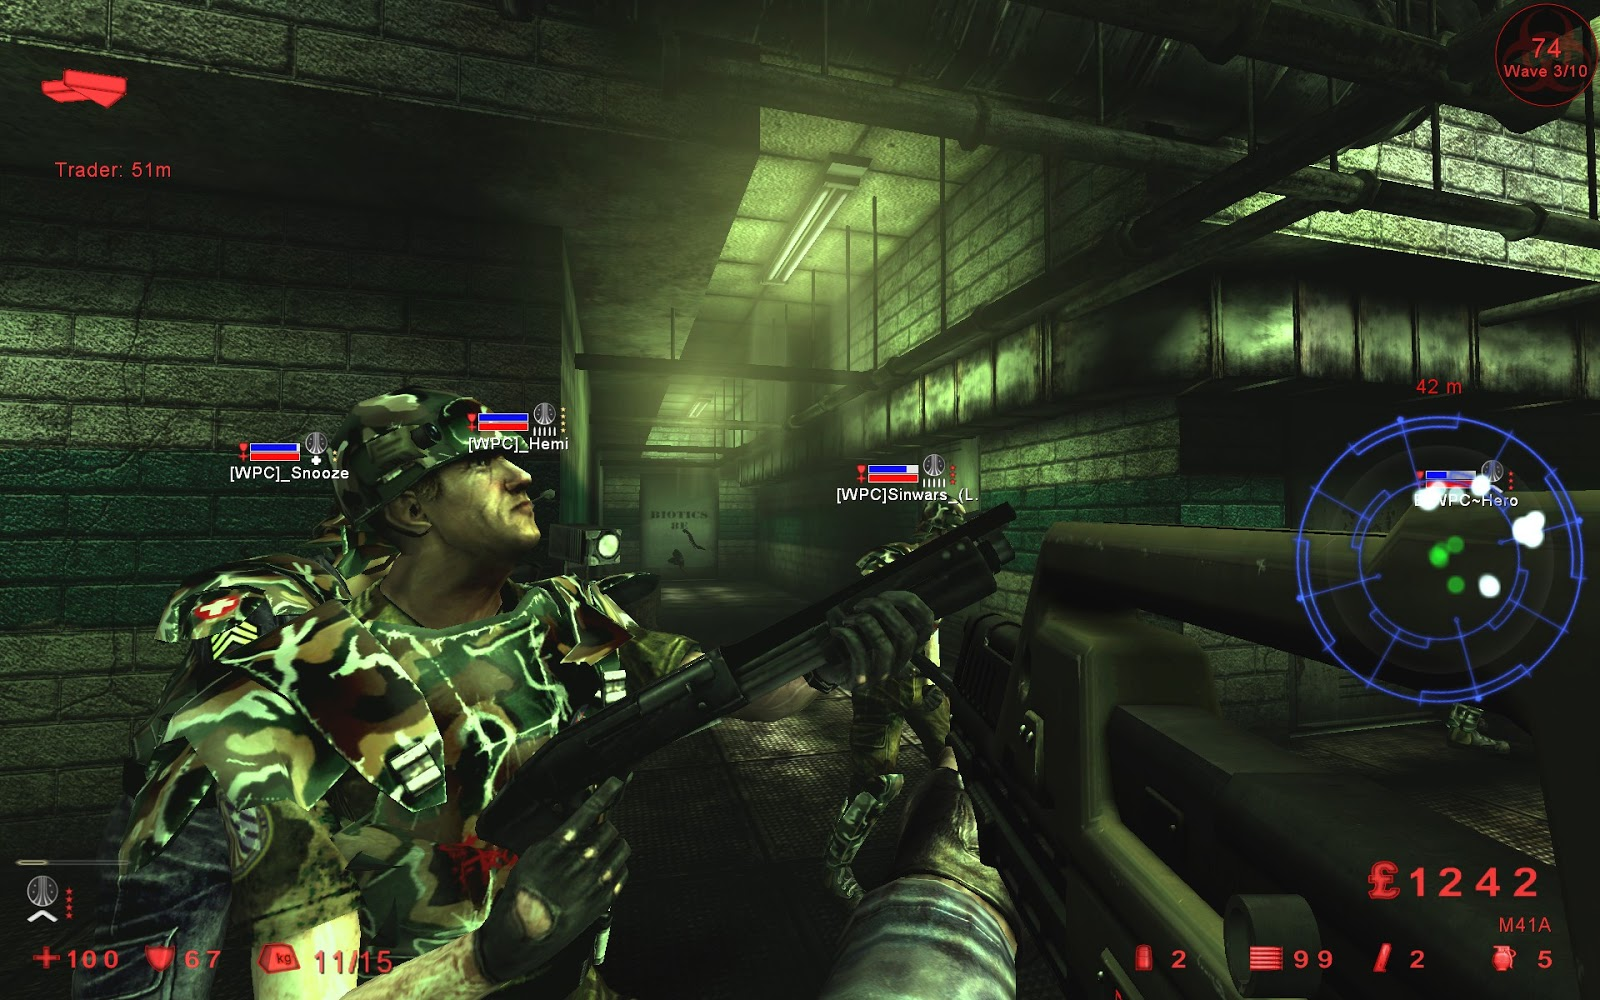 Time To Get Excited Alienu0027s Fans As A New Mod Version 1.2 Has Been Released  For Killing Floor. This High Quality FPS Mod Was Almost Two Years In The  Making, ...